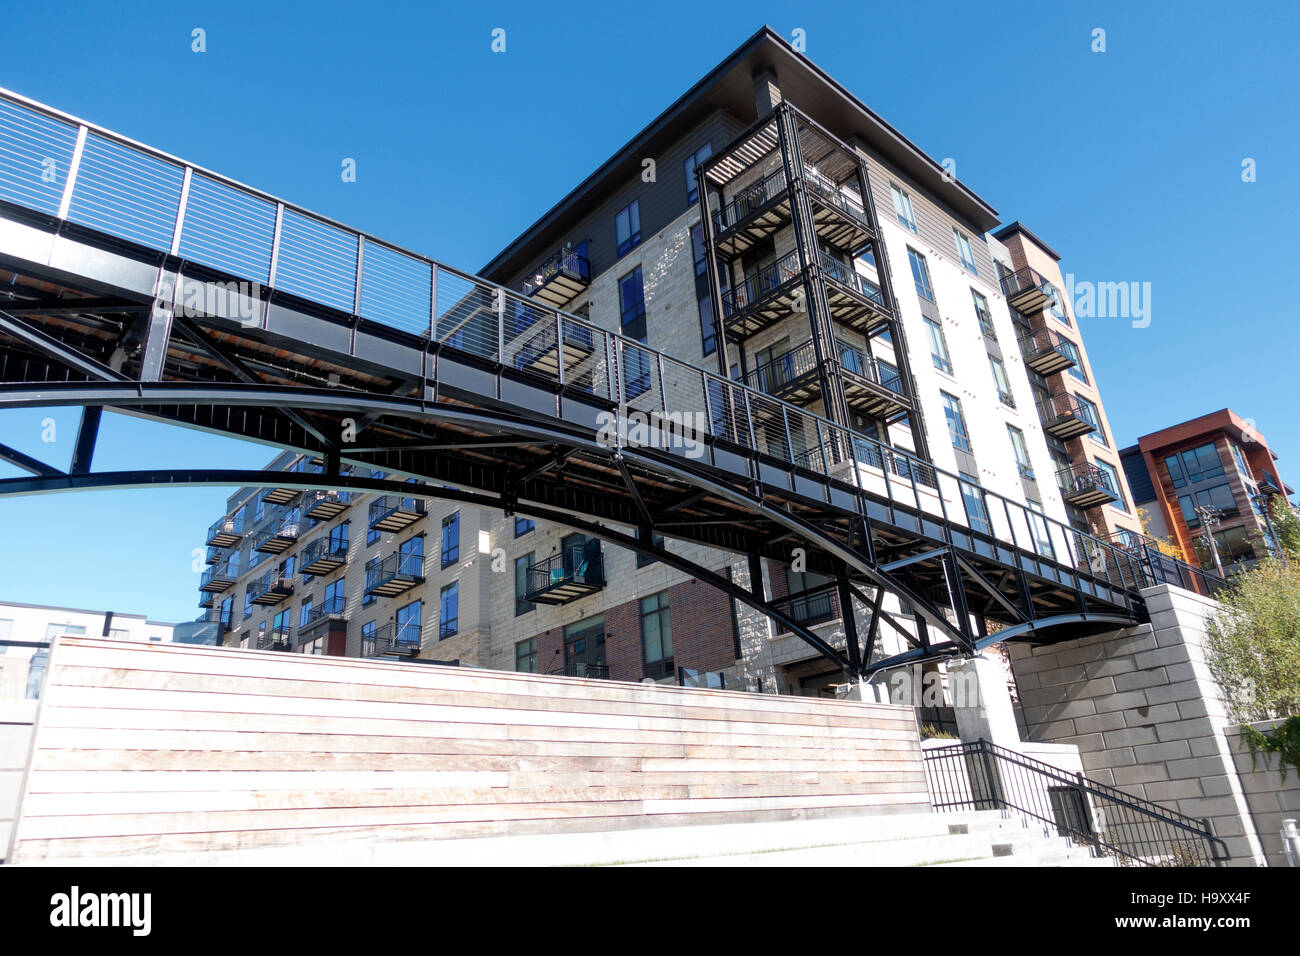 Condo or apartment building with direct access to the Midtown Greenway bicycle & pedestrian trail. Minneapolis - Stock Image